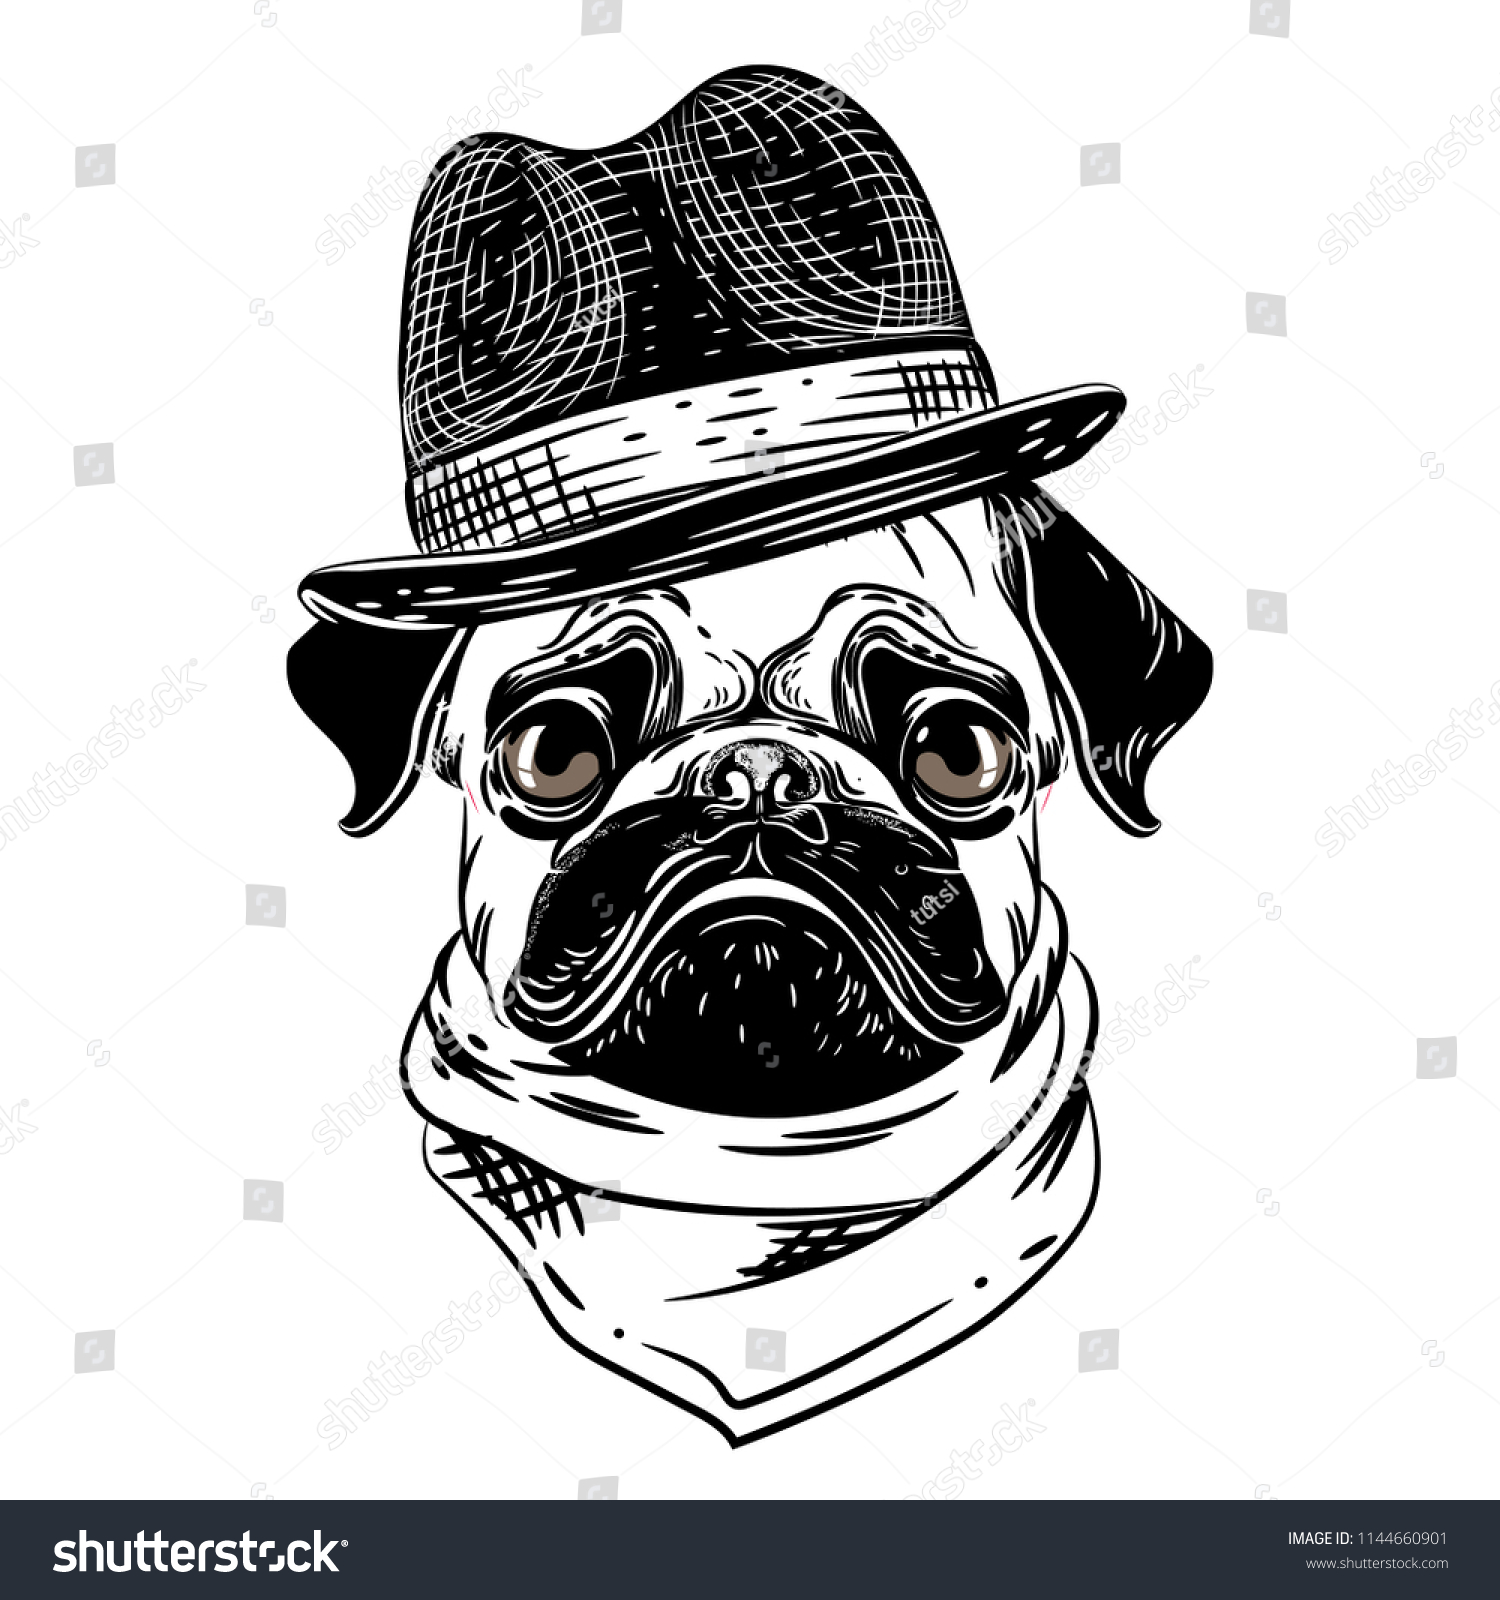 Vector Image Pug Hat Scarf T Stock Vector (Royalty Free) 1144660901 ... 3e08dc3b892